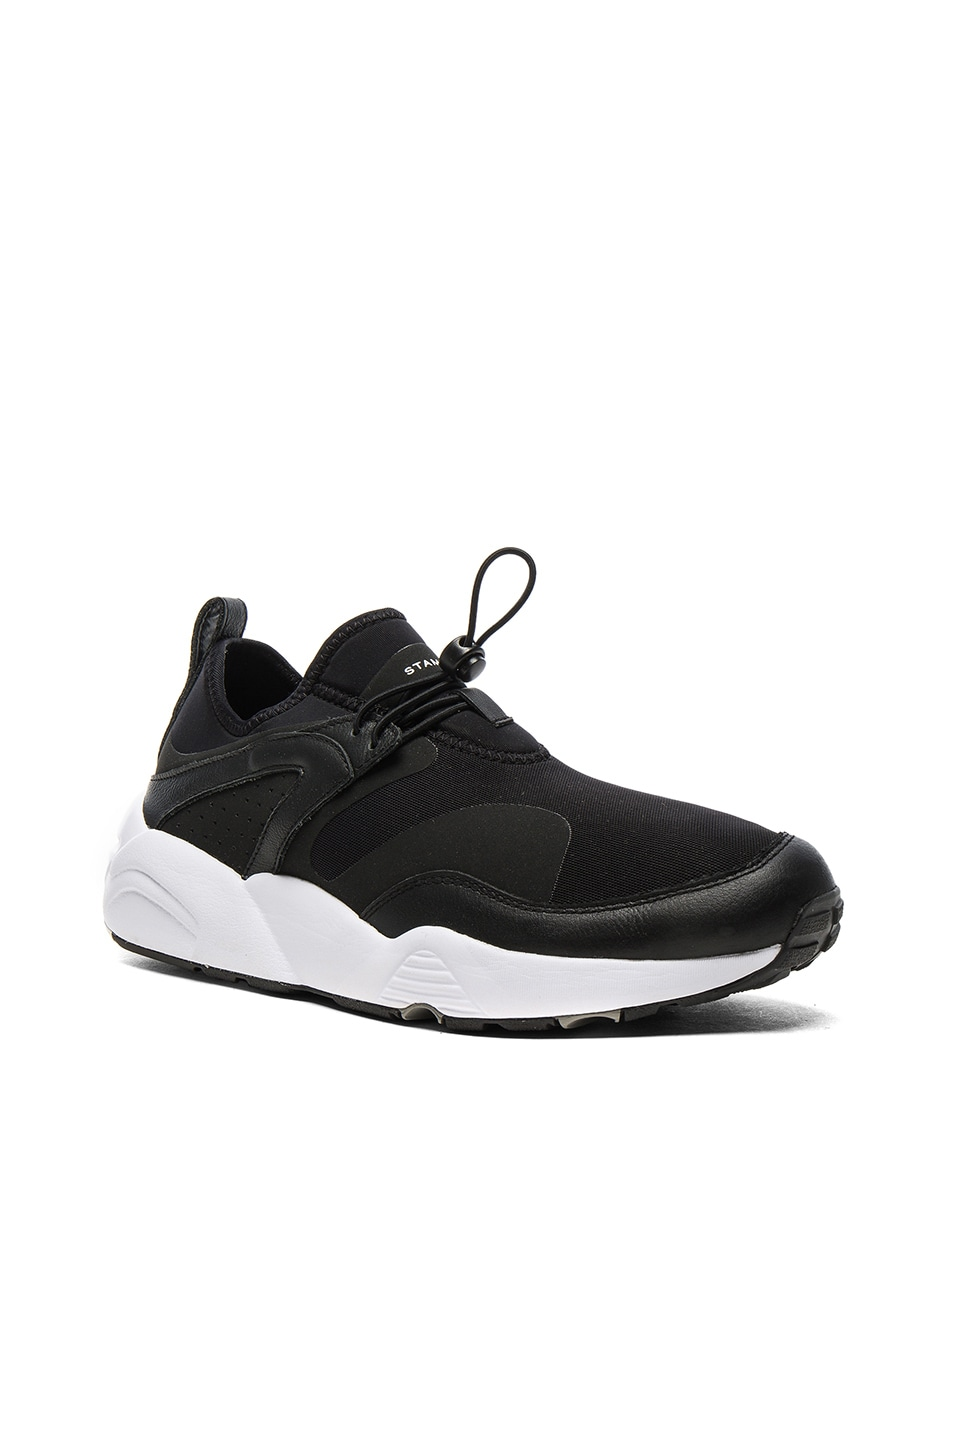 cab2ac714dc9 Image 1 of Puma Select x Stampd Blaze of Glory in Black   White